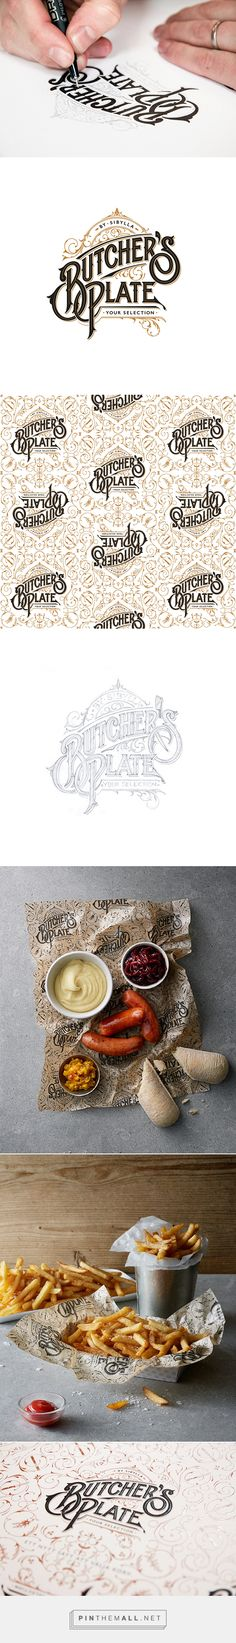 Butcher's Plate on Behance - created via http://pinthemall.net (good food logo)